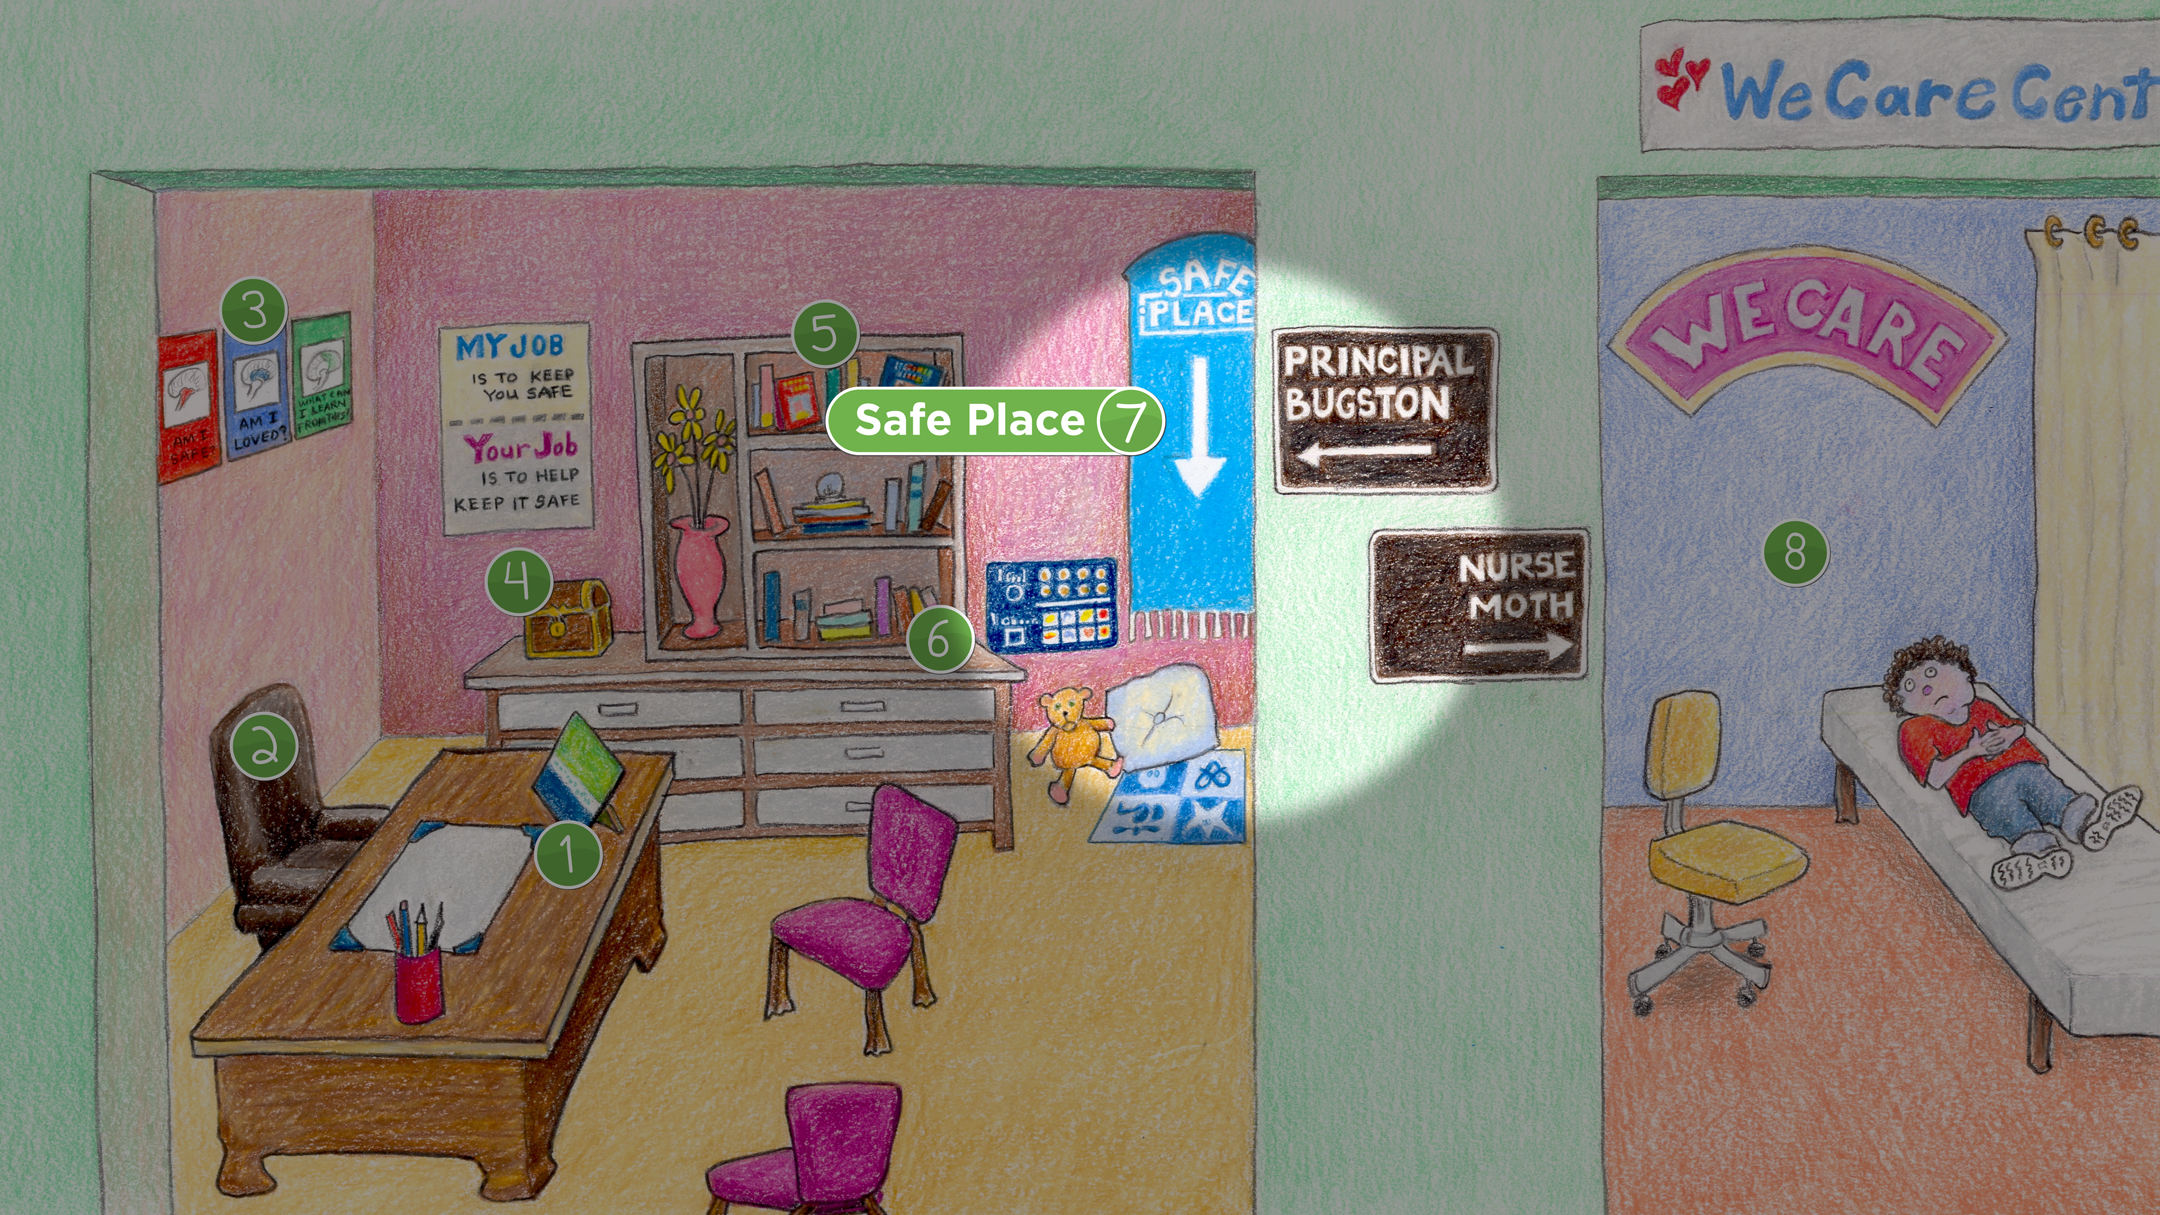 Principal & Clinic: Safe Place